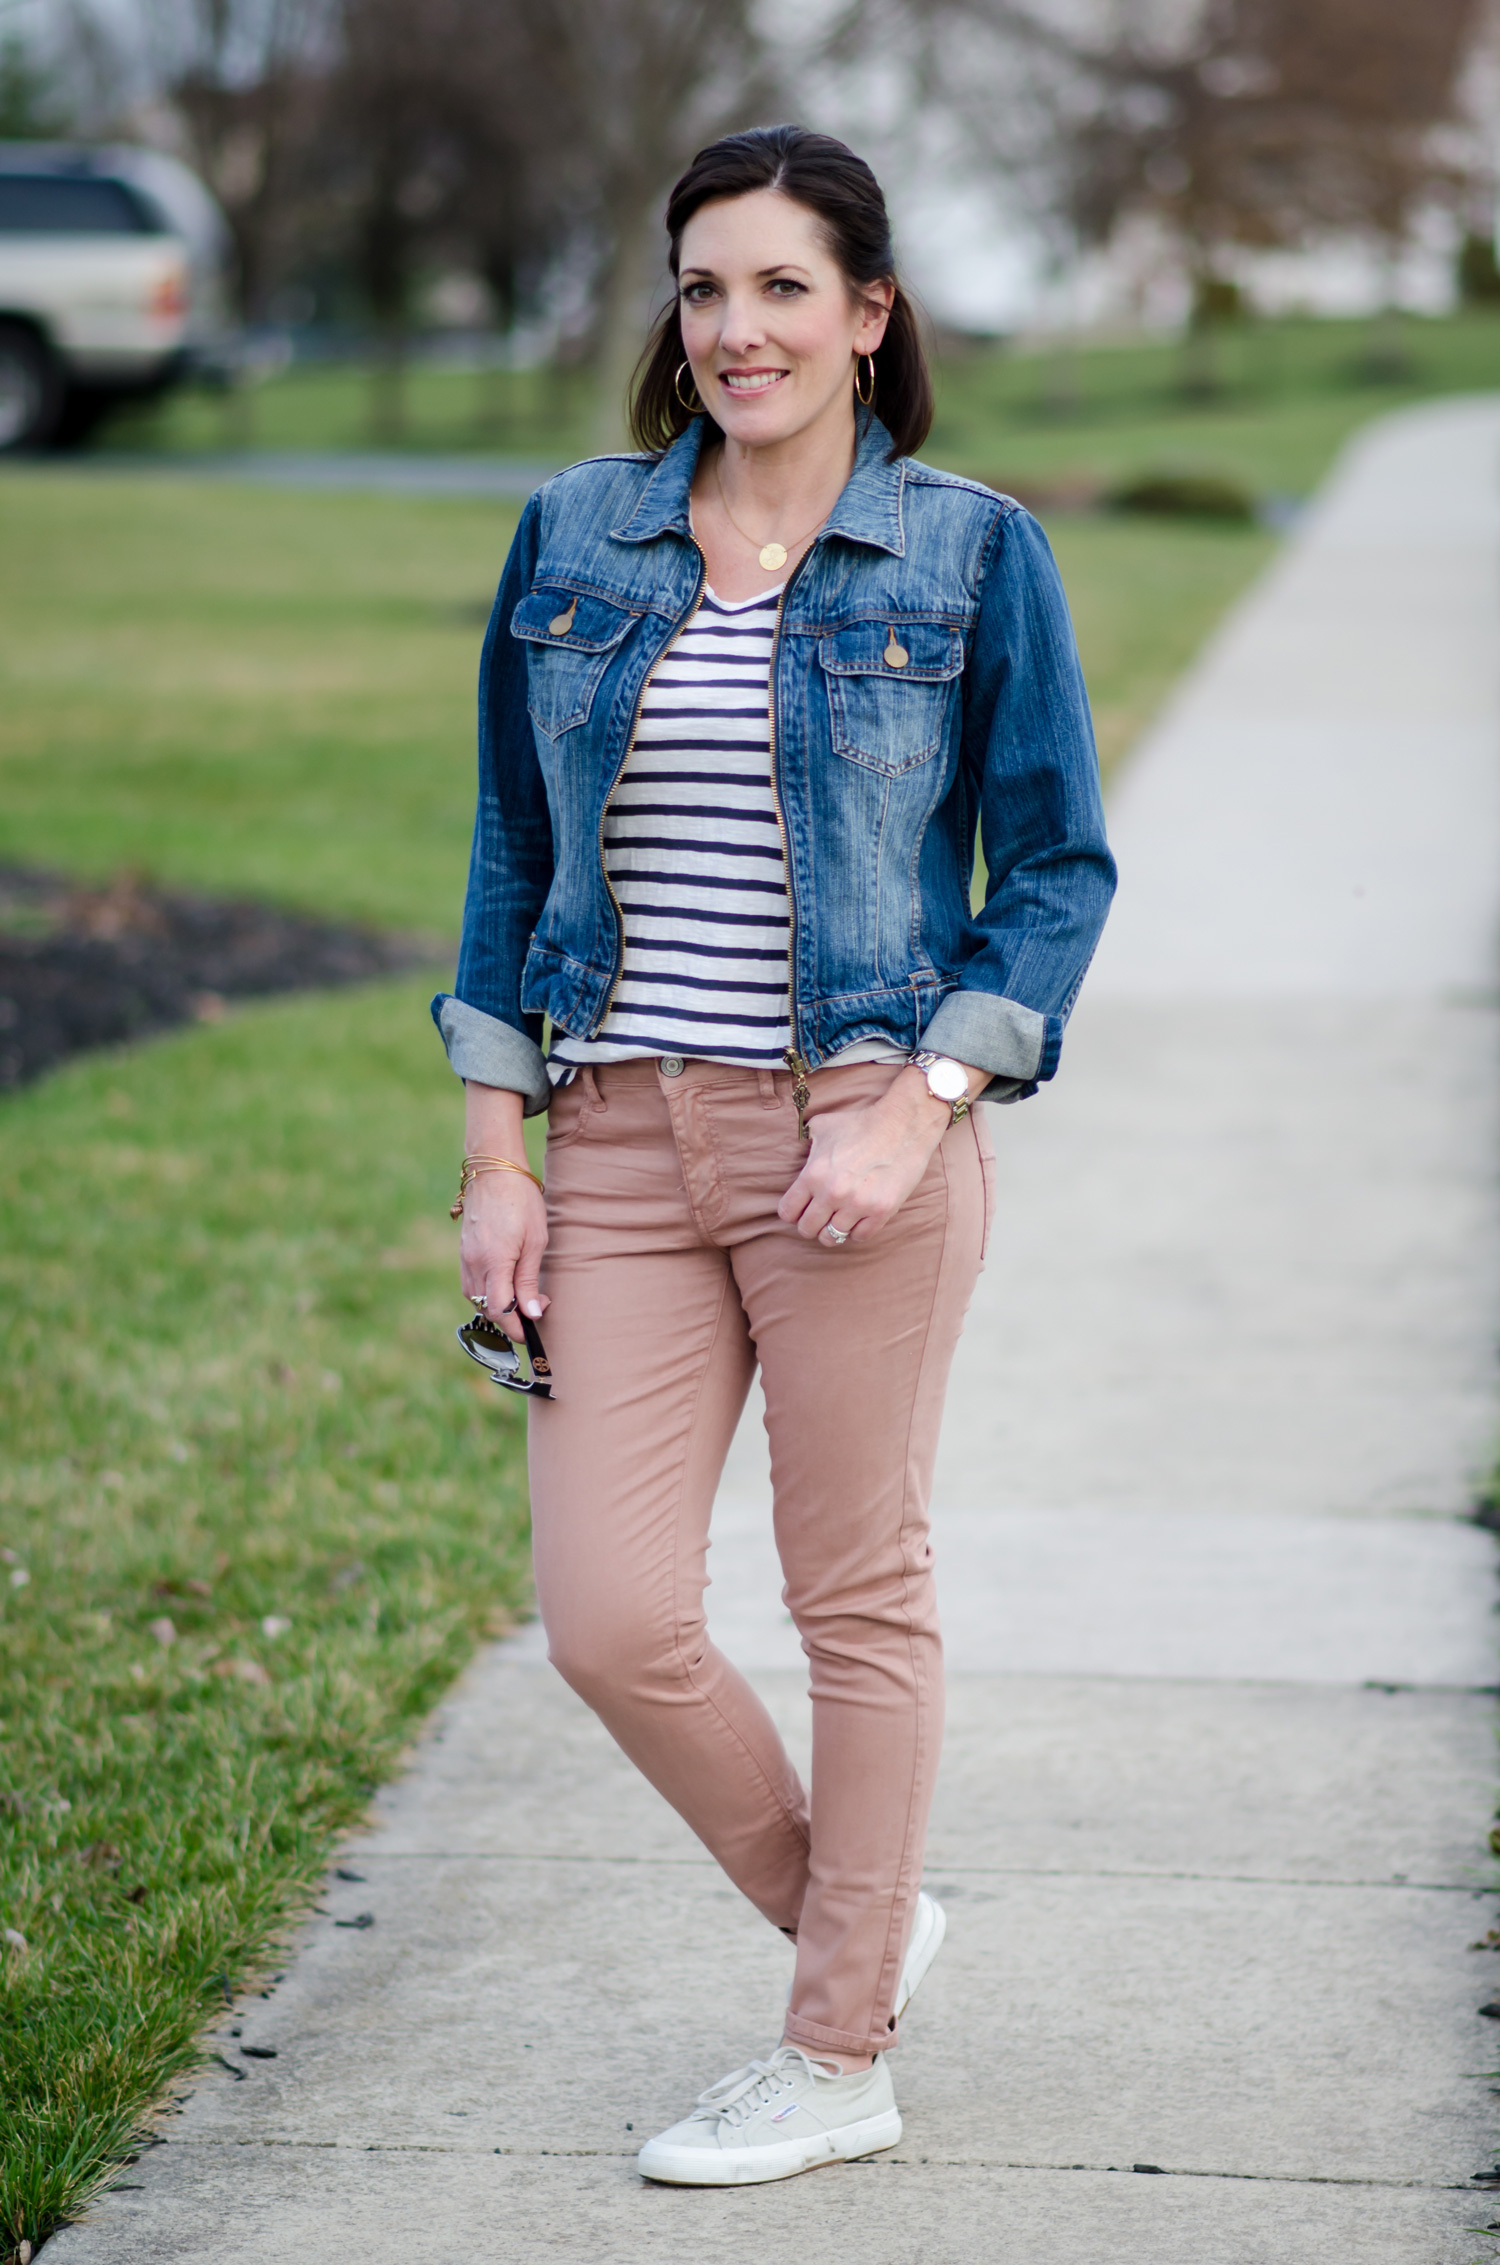 Spring Outfit Inspo: Blush Jeans with Denim Jacket